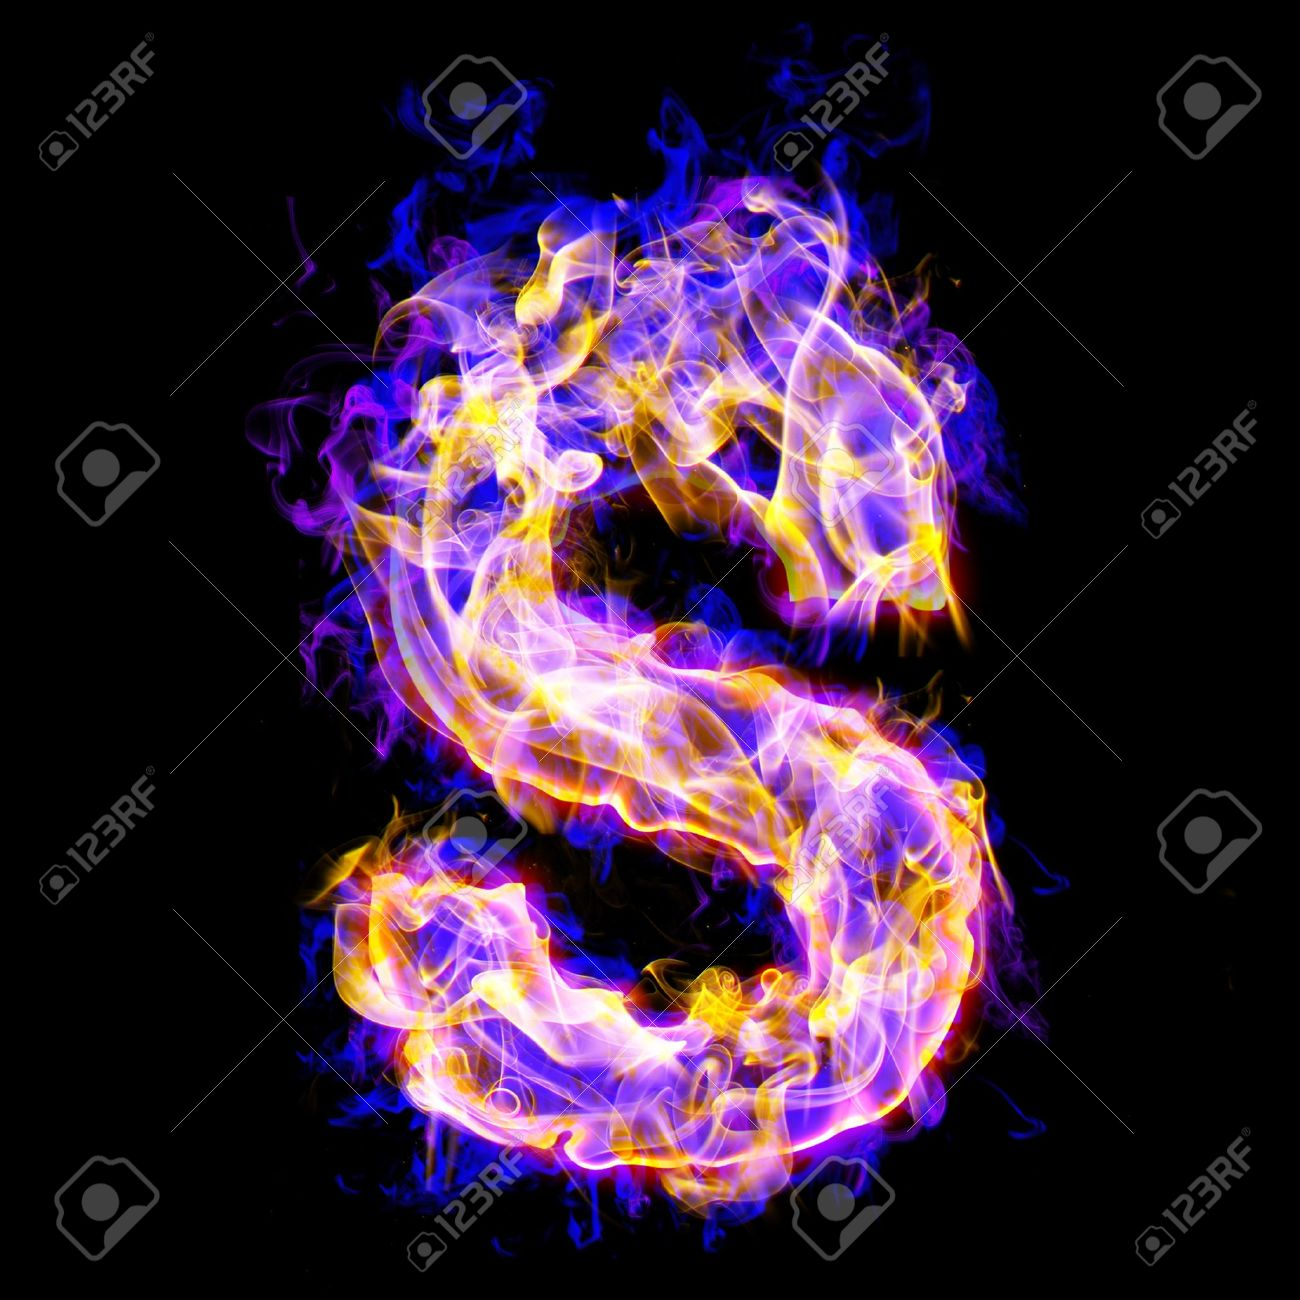 Letter S Burning With Blue And Pink Colors Stock Photo Picture And